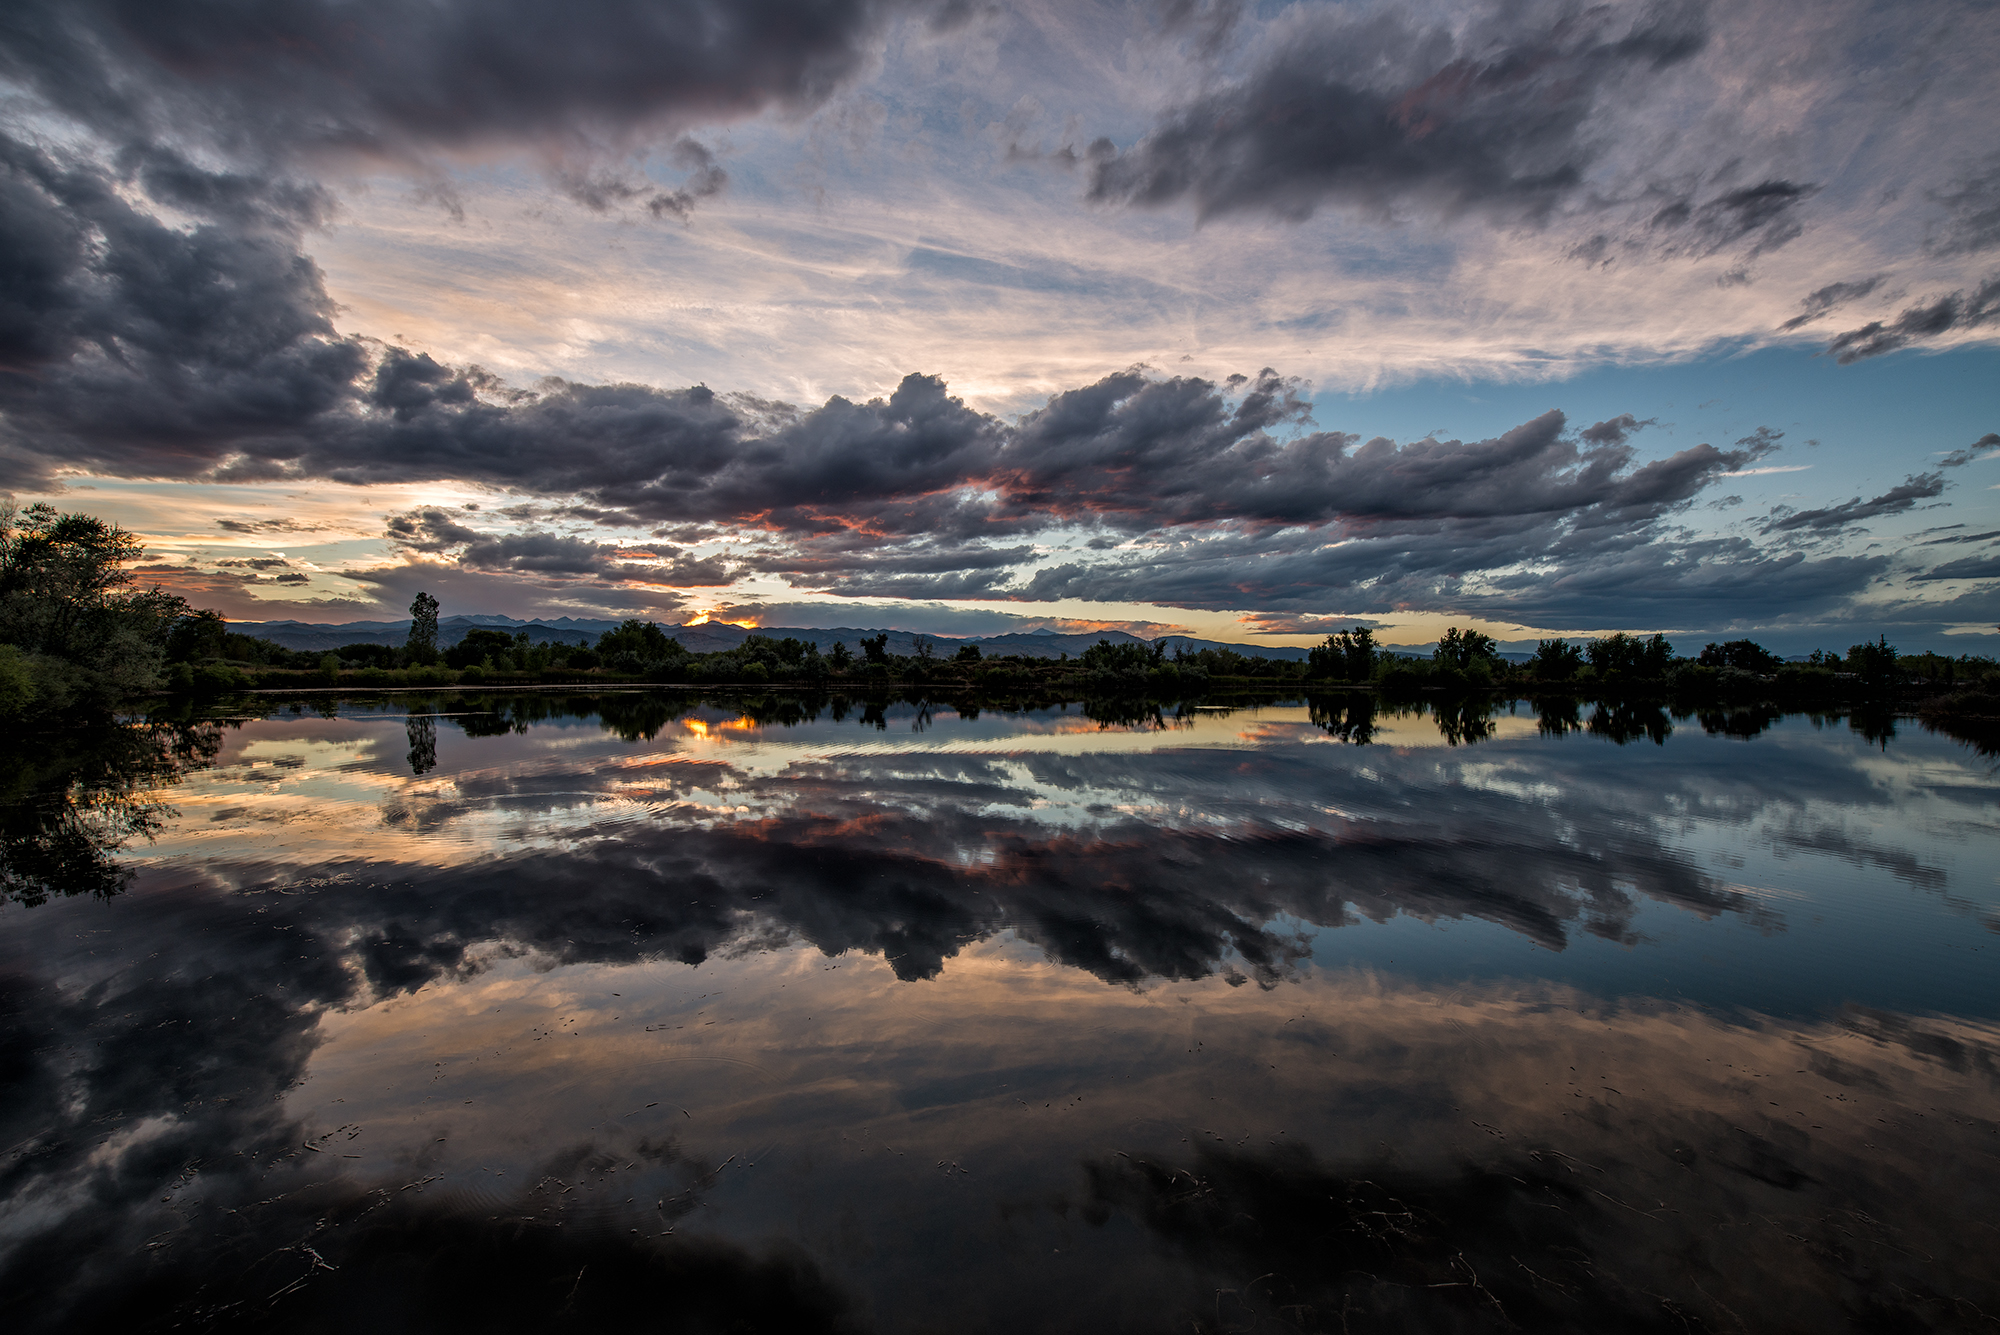 Sunset Reflection, #2. Sawhill Ponds, Colorado, 2015